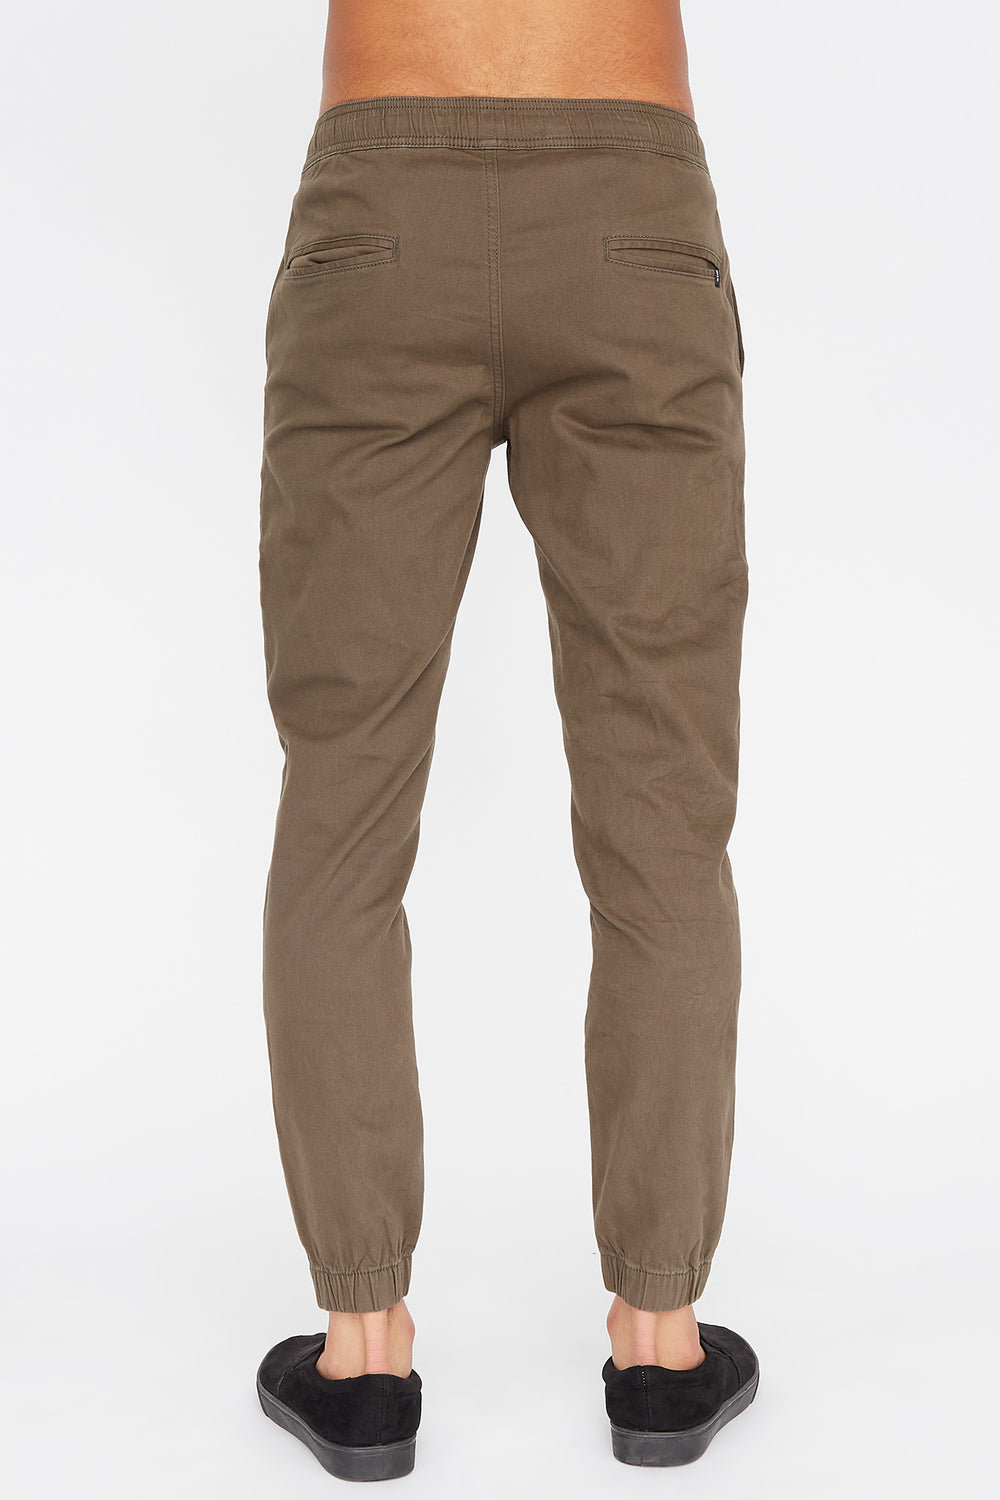 West49 Mens Jogger Khaki